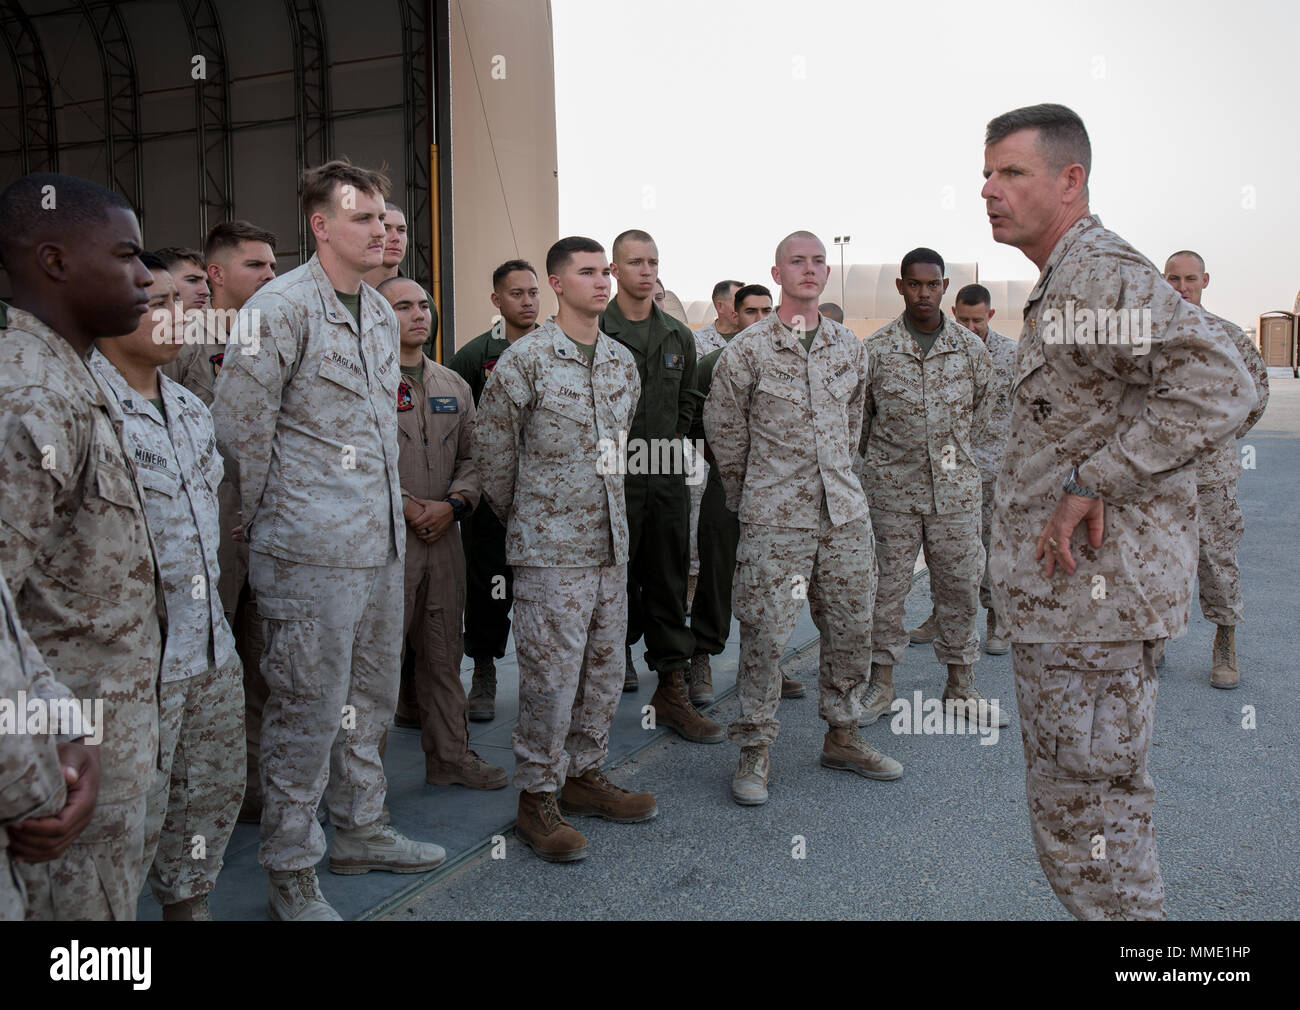 U.S. Marine Lt. Gen. William D. Beydler, commander, U.S. Marine Corps Forces Central Command, visits the Marines of Marine Medium Tiltrotor Squadron 363 (VMM-363) while in the Middle East Oct. 24, 2017. VMM-363 is a major subordinate element of Special Purpose Marine Air-Ground Task Force Crisis Response – Central Command 17.2. Beydler visited VMM-363 to listen to questions, share his guidance and discuss their daily operations. Stock Photo